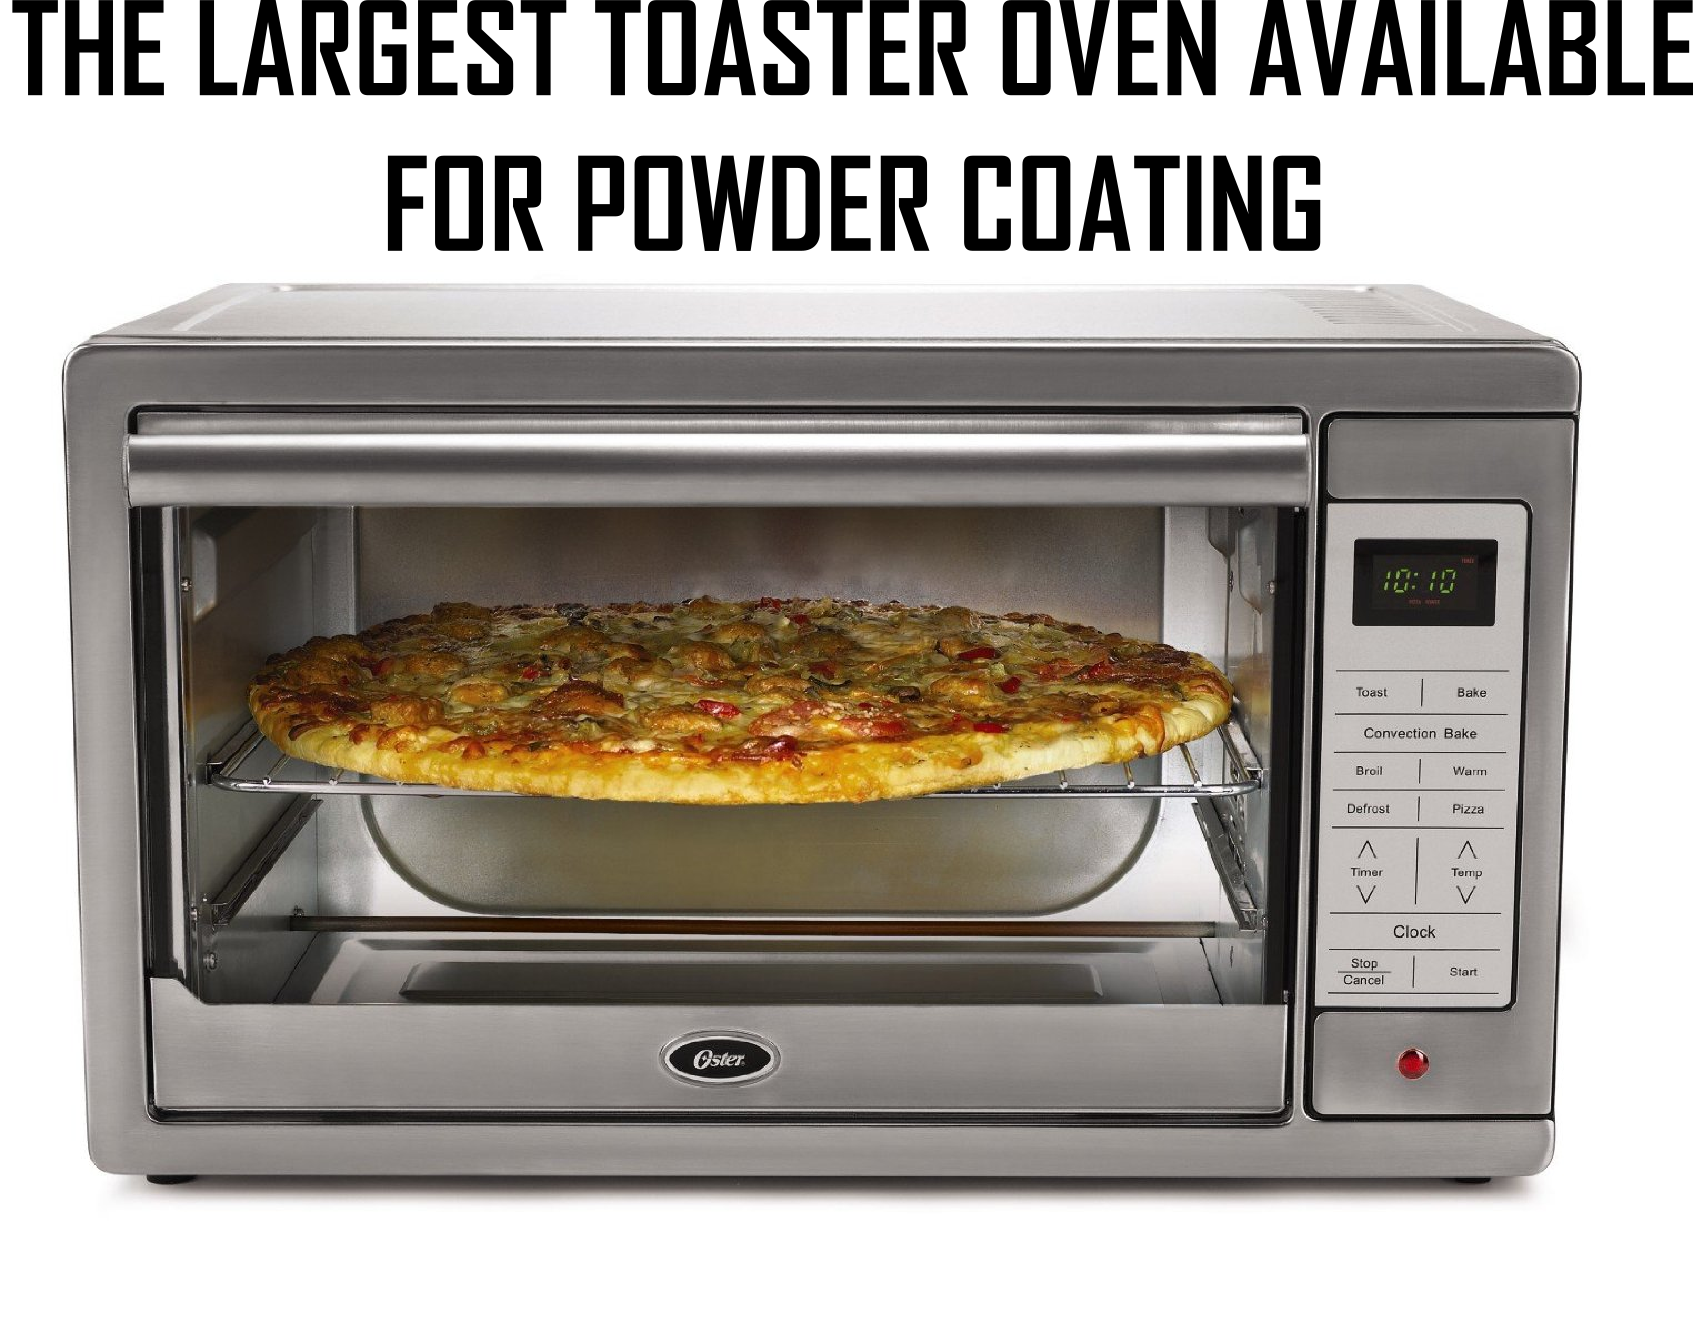 Powder Coating Ovens Stainless Steel Oven Toaster Oven Digital